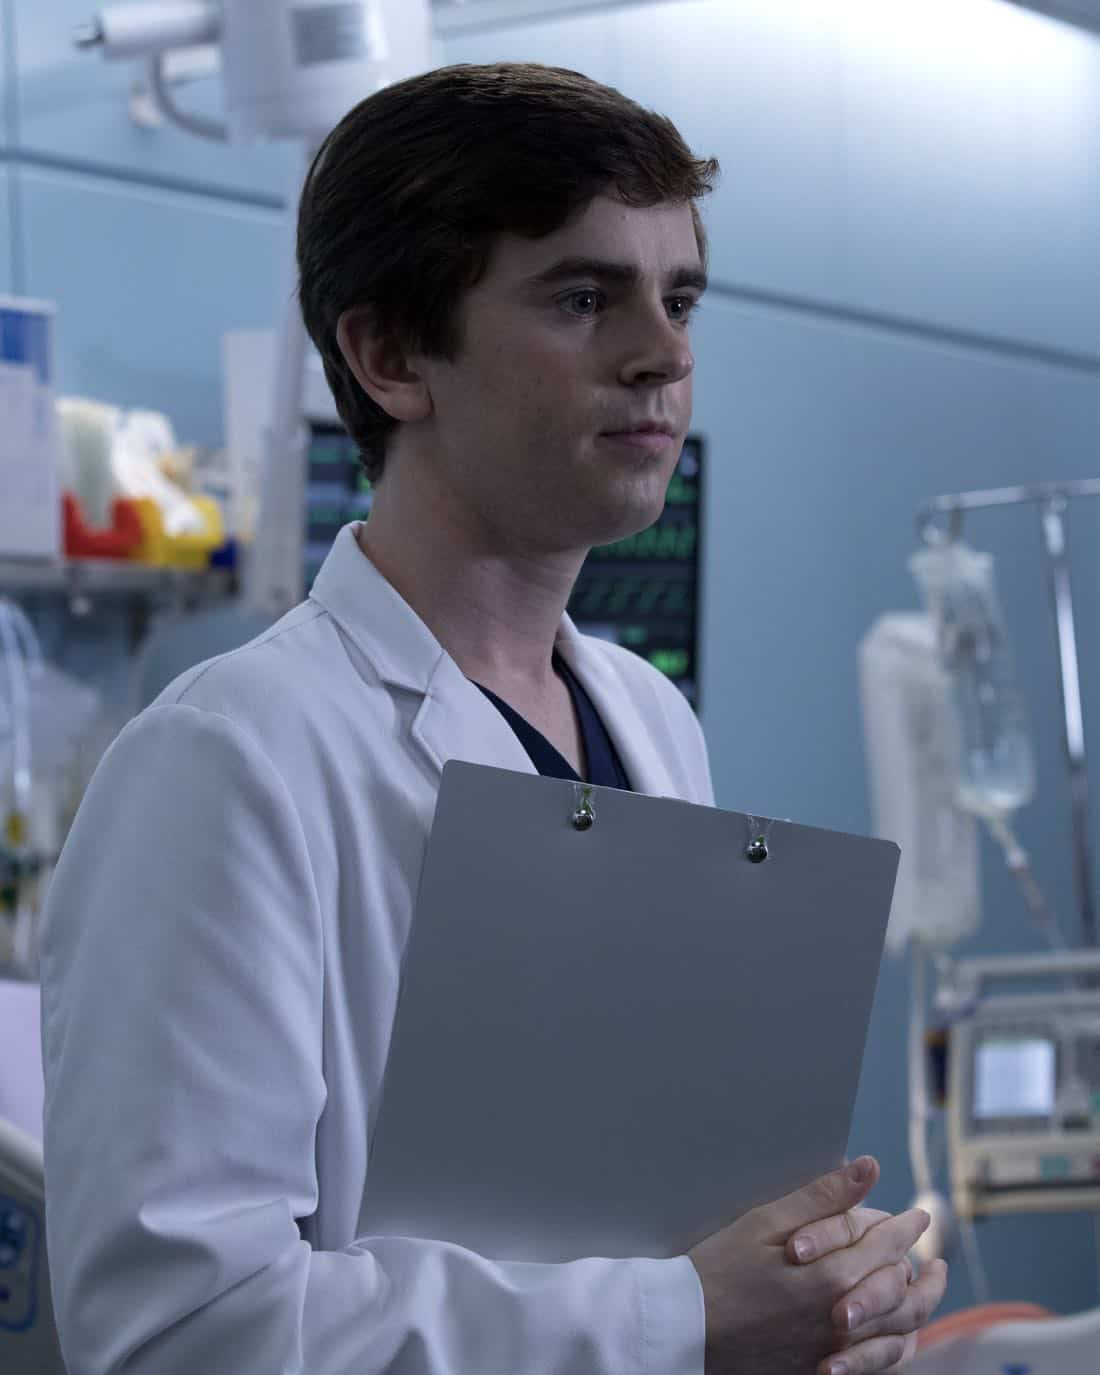 The Good Doctor Season 1 Episode 11 : doctor, season, episode, DOCTOR, Season, Episode, Photos, Apple, SEAT42F